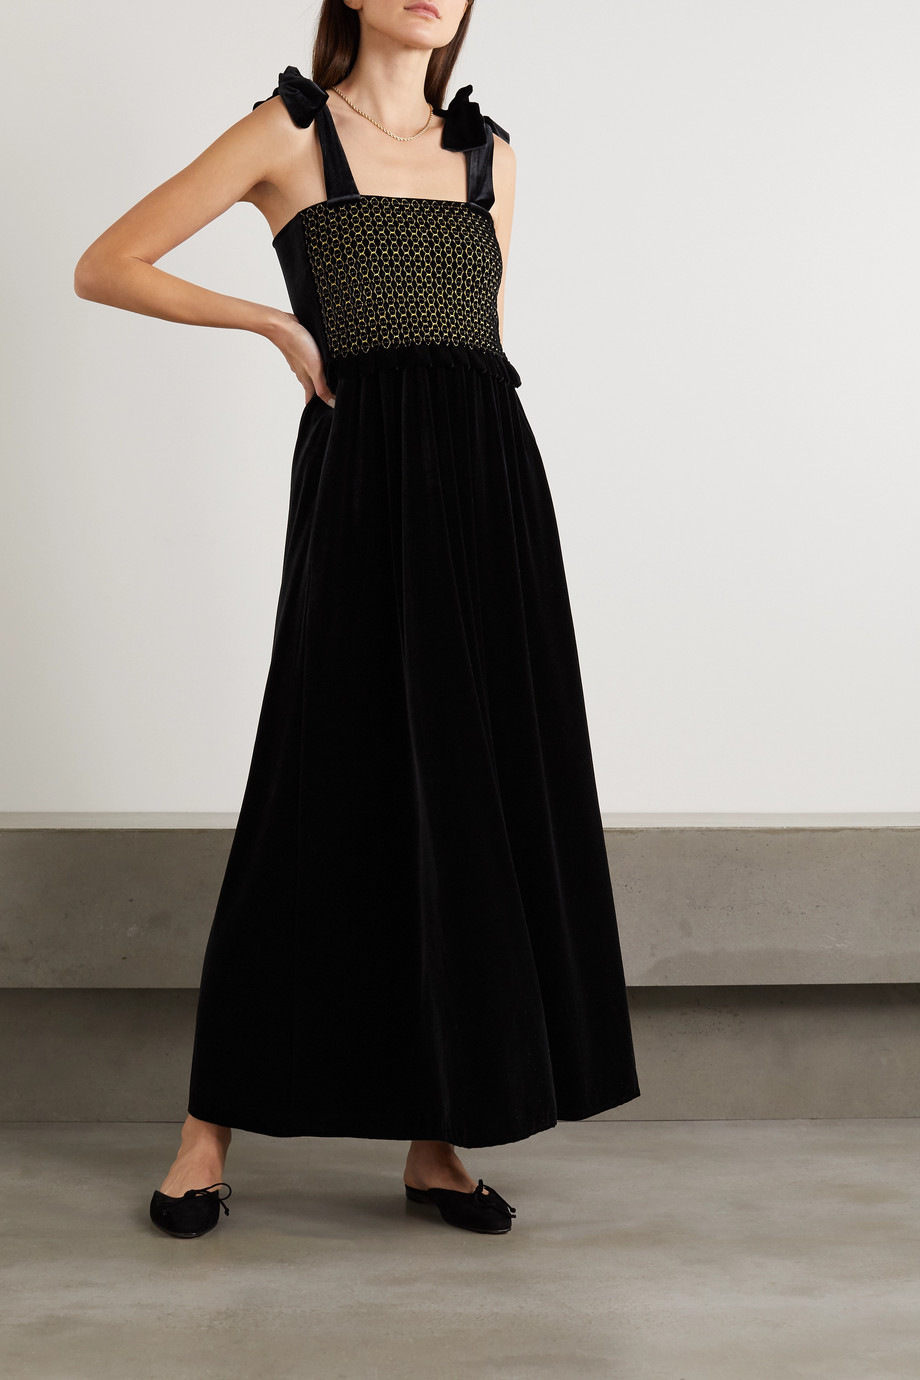 LORETTA CAPONI Laudomia bow-detailed smocked stretch-velvet maxi dress